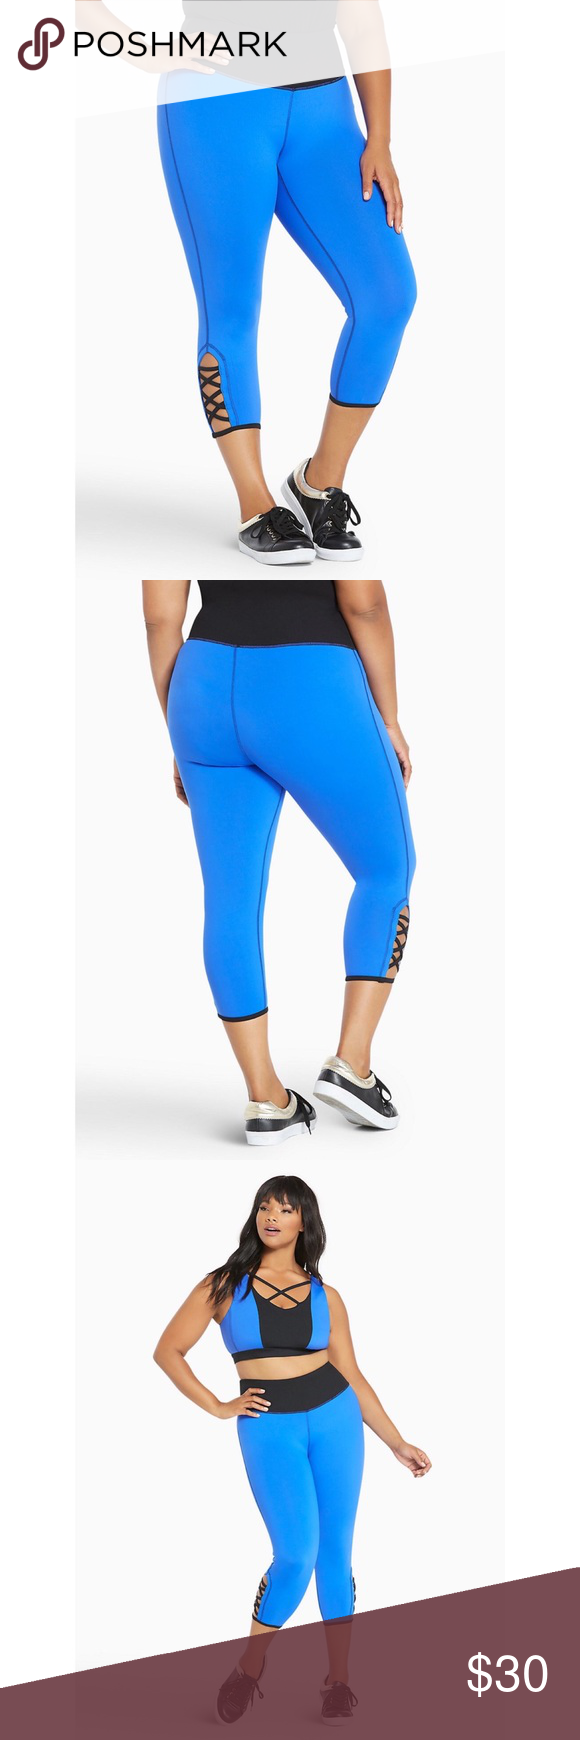 3de0d9681589fb Torrid Active Colorblock Strappy Cropped Legging Make your low-impact  workout pop with these colorblocked